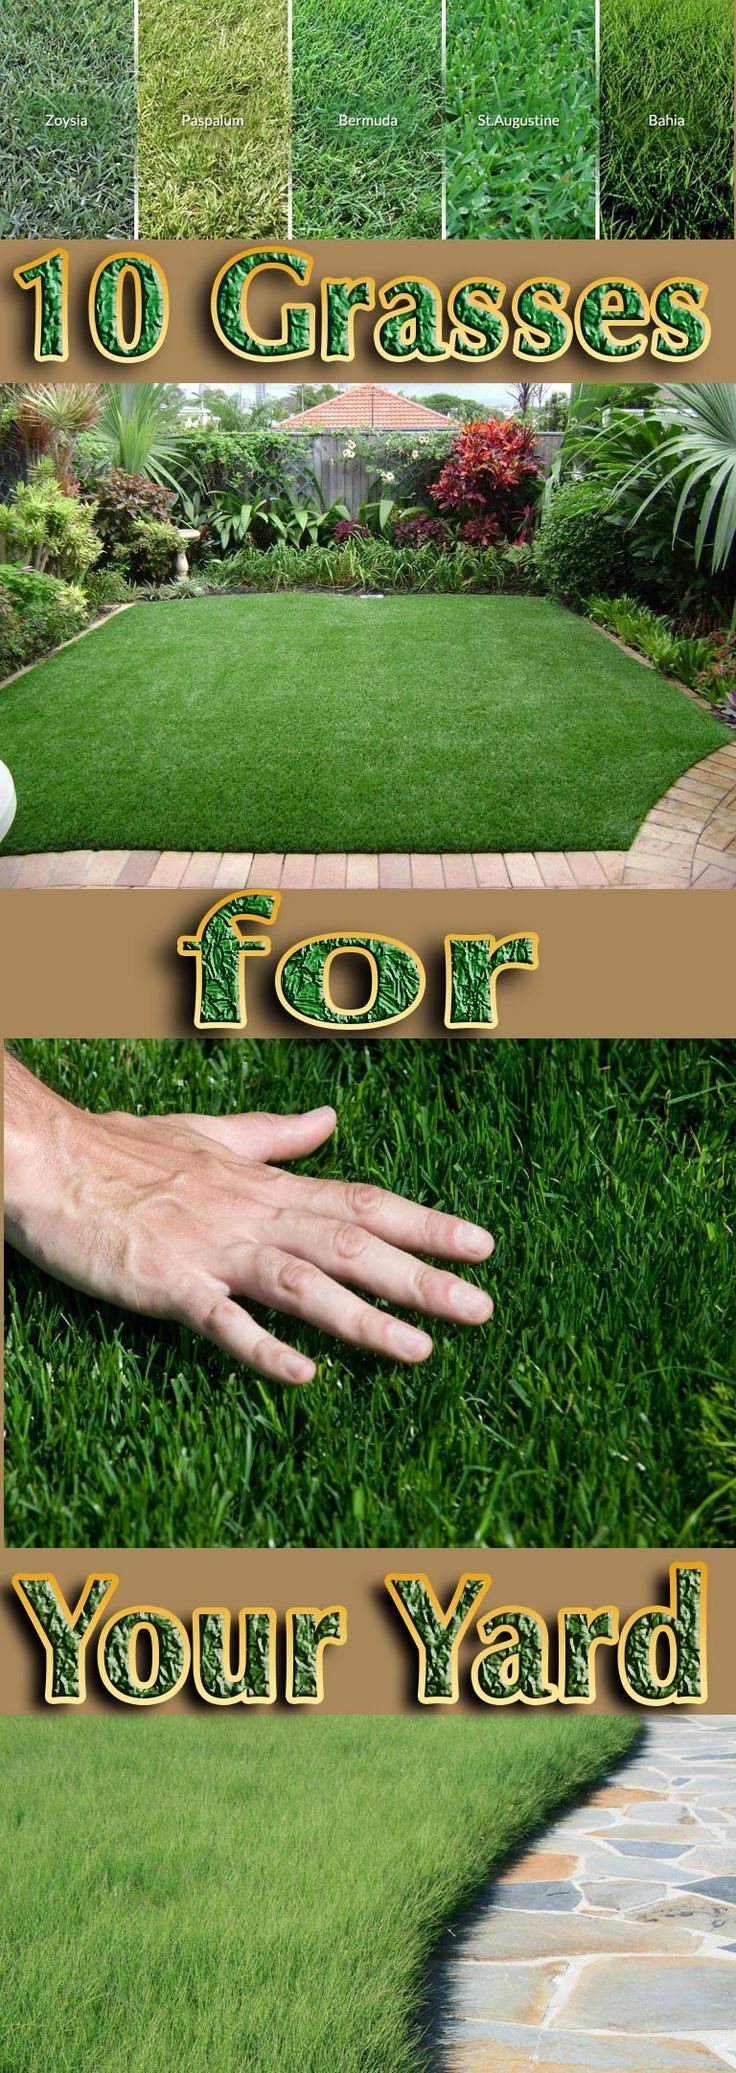 No single grass variety is all things to all landscapes, but each of these grasses has something to recommend it and may be just the grass you need to increase the curb appeal of your home, cover an embankment without needing weekly mowing in summer, or spruce up a tree lawn that needs a sturdy grass that can stand up to foot traffic... #lawn #grass #lawncare